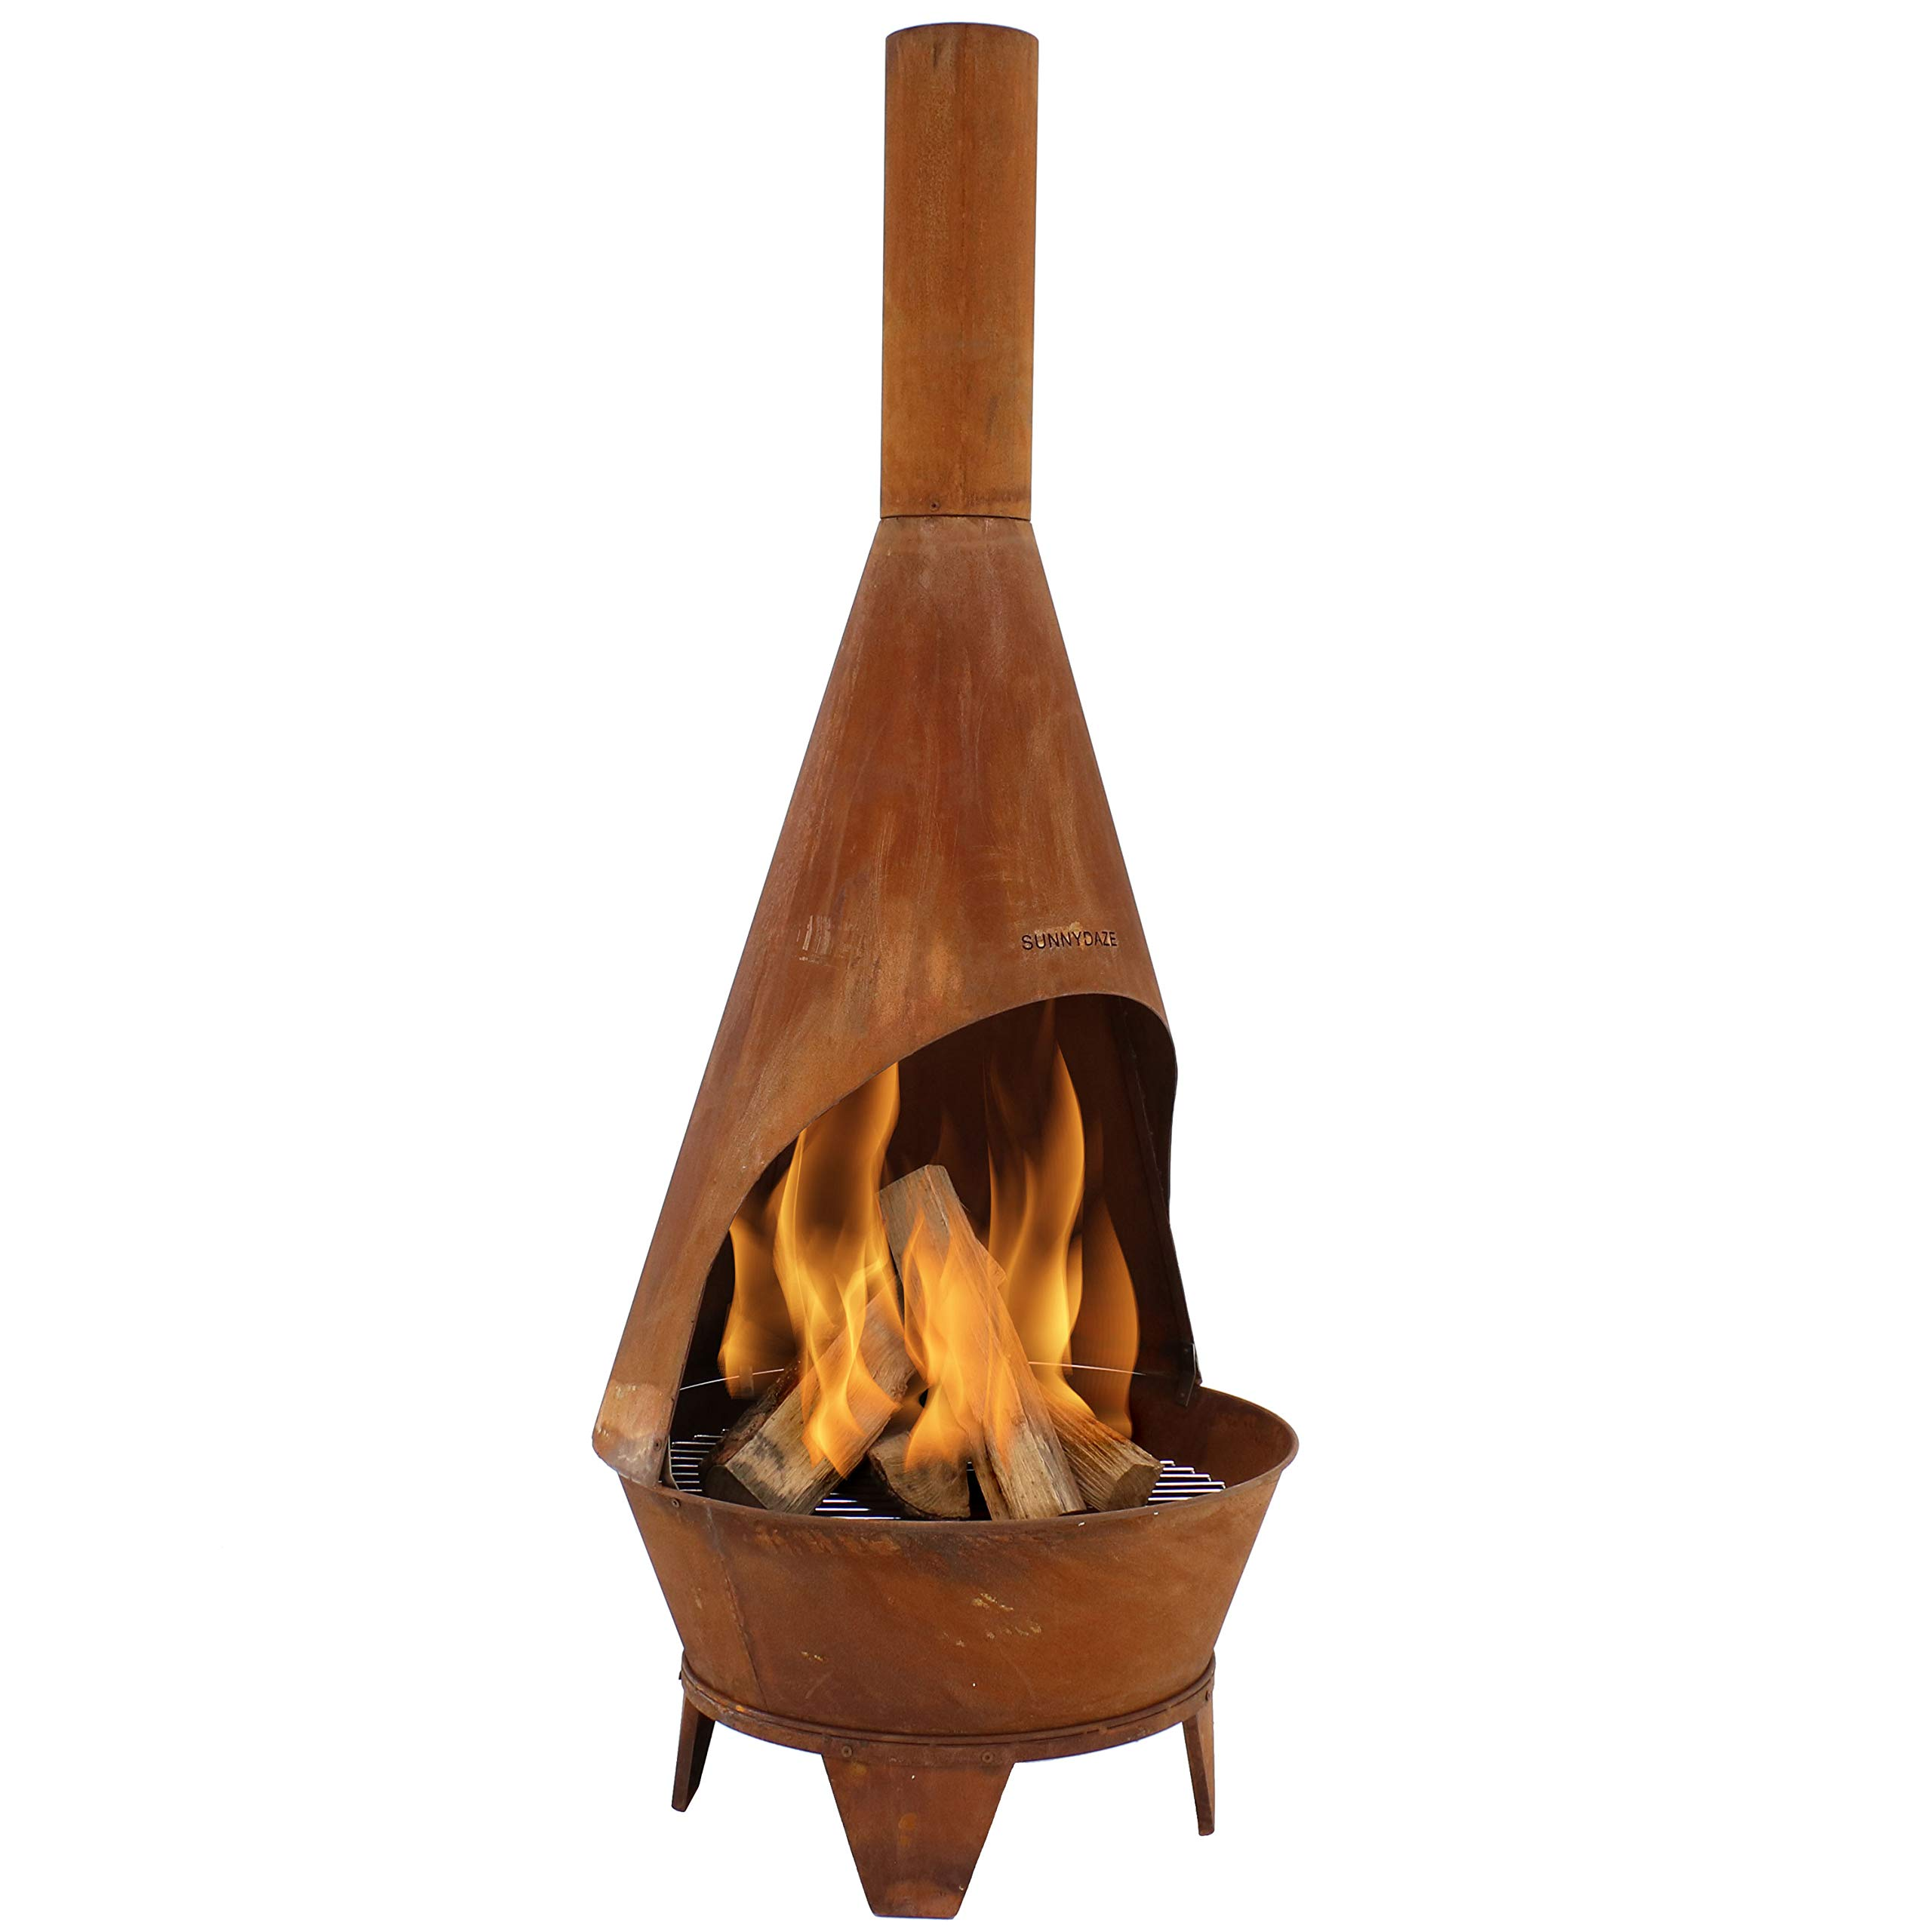 Sunnydaze Chiminea Fire Pit - Large Outdoor Patio Wood-Burning Mexican Style Backyard Fireplace Stove - Oxidized Rustic Cold-Rolled Steel - 6 Foot Tall by Sunnydaze Decor